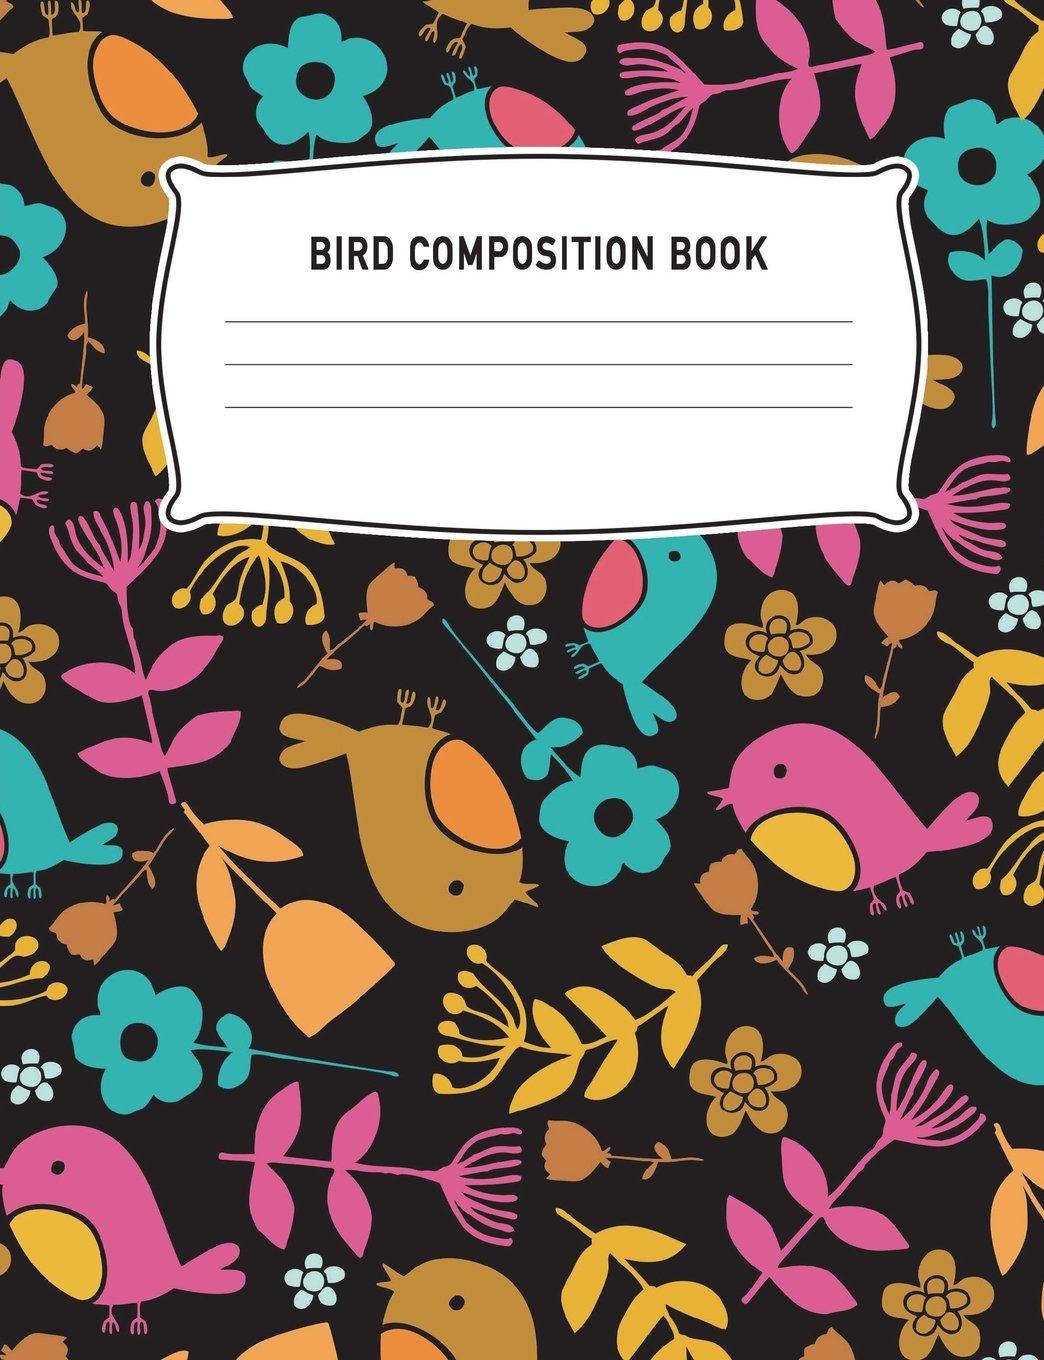 Download Bird Composition Book: Colorful Birds Black Background Notebook College Ruled Writing Diary Practice Journal Organizer: Youth, Kids, Middle School, ... Lined Paper Note Taking, Write, 100 Pages pdf epub